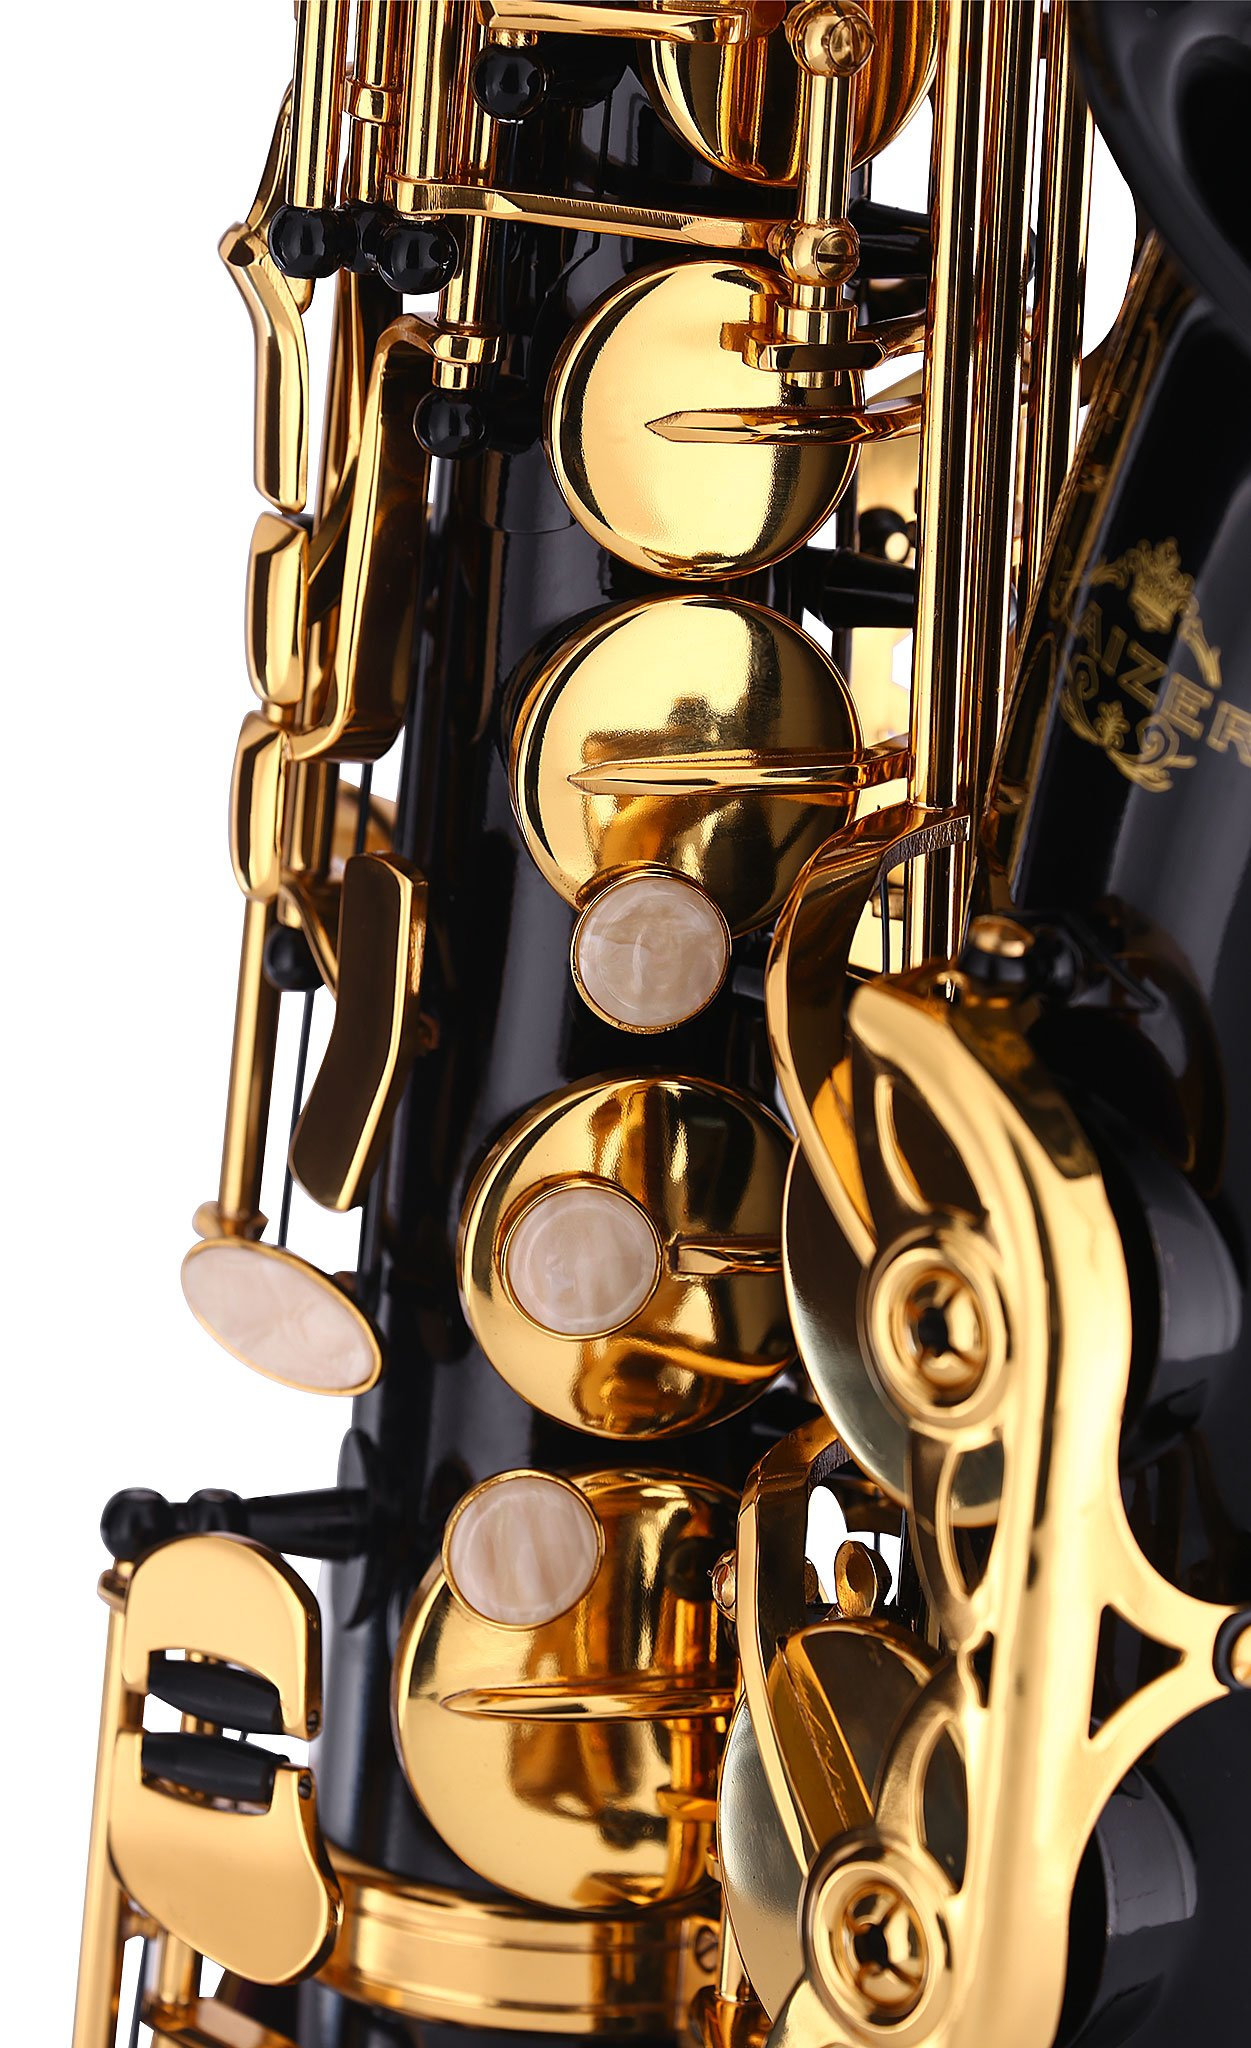 Kaizer Alto Saxophone E Flat Eb Black Lacquer Body Gold Keys 1000 Series Sax Includes Case Mouthpiece and Accessories ASAX-1000BKGK by Kaizer (Image #6)